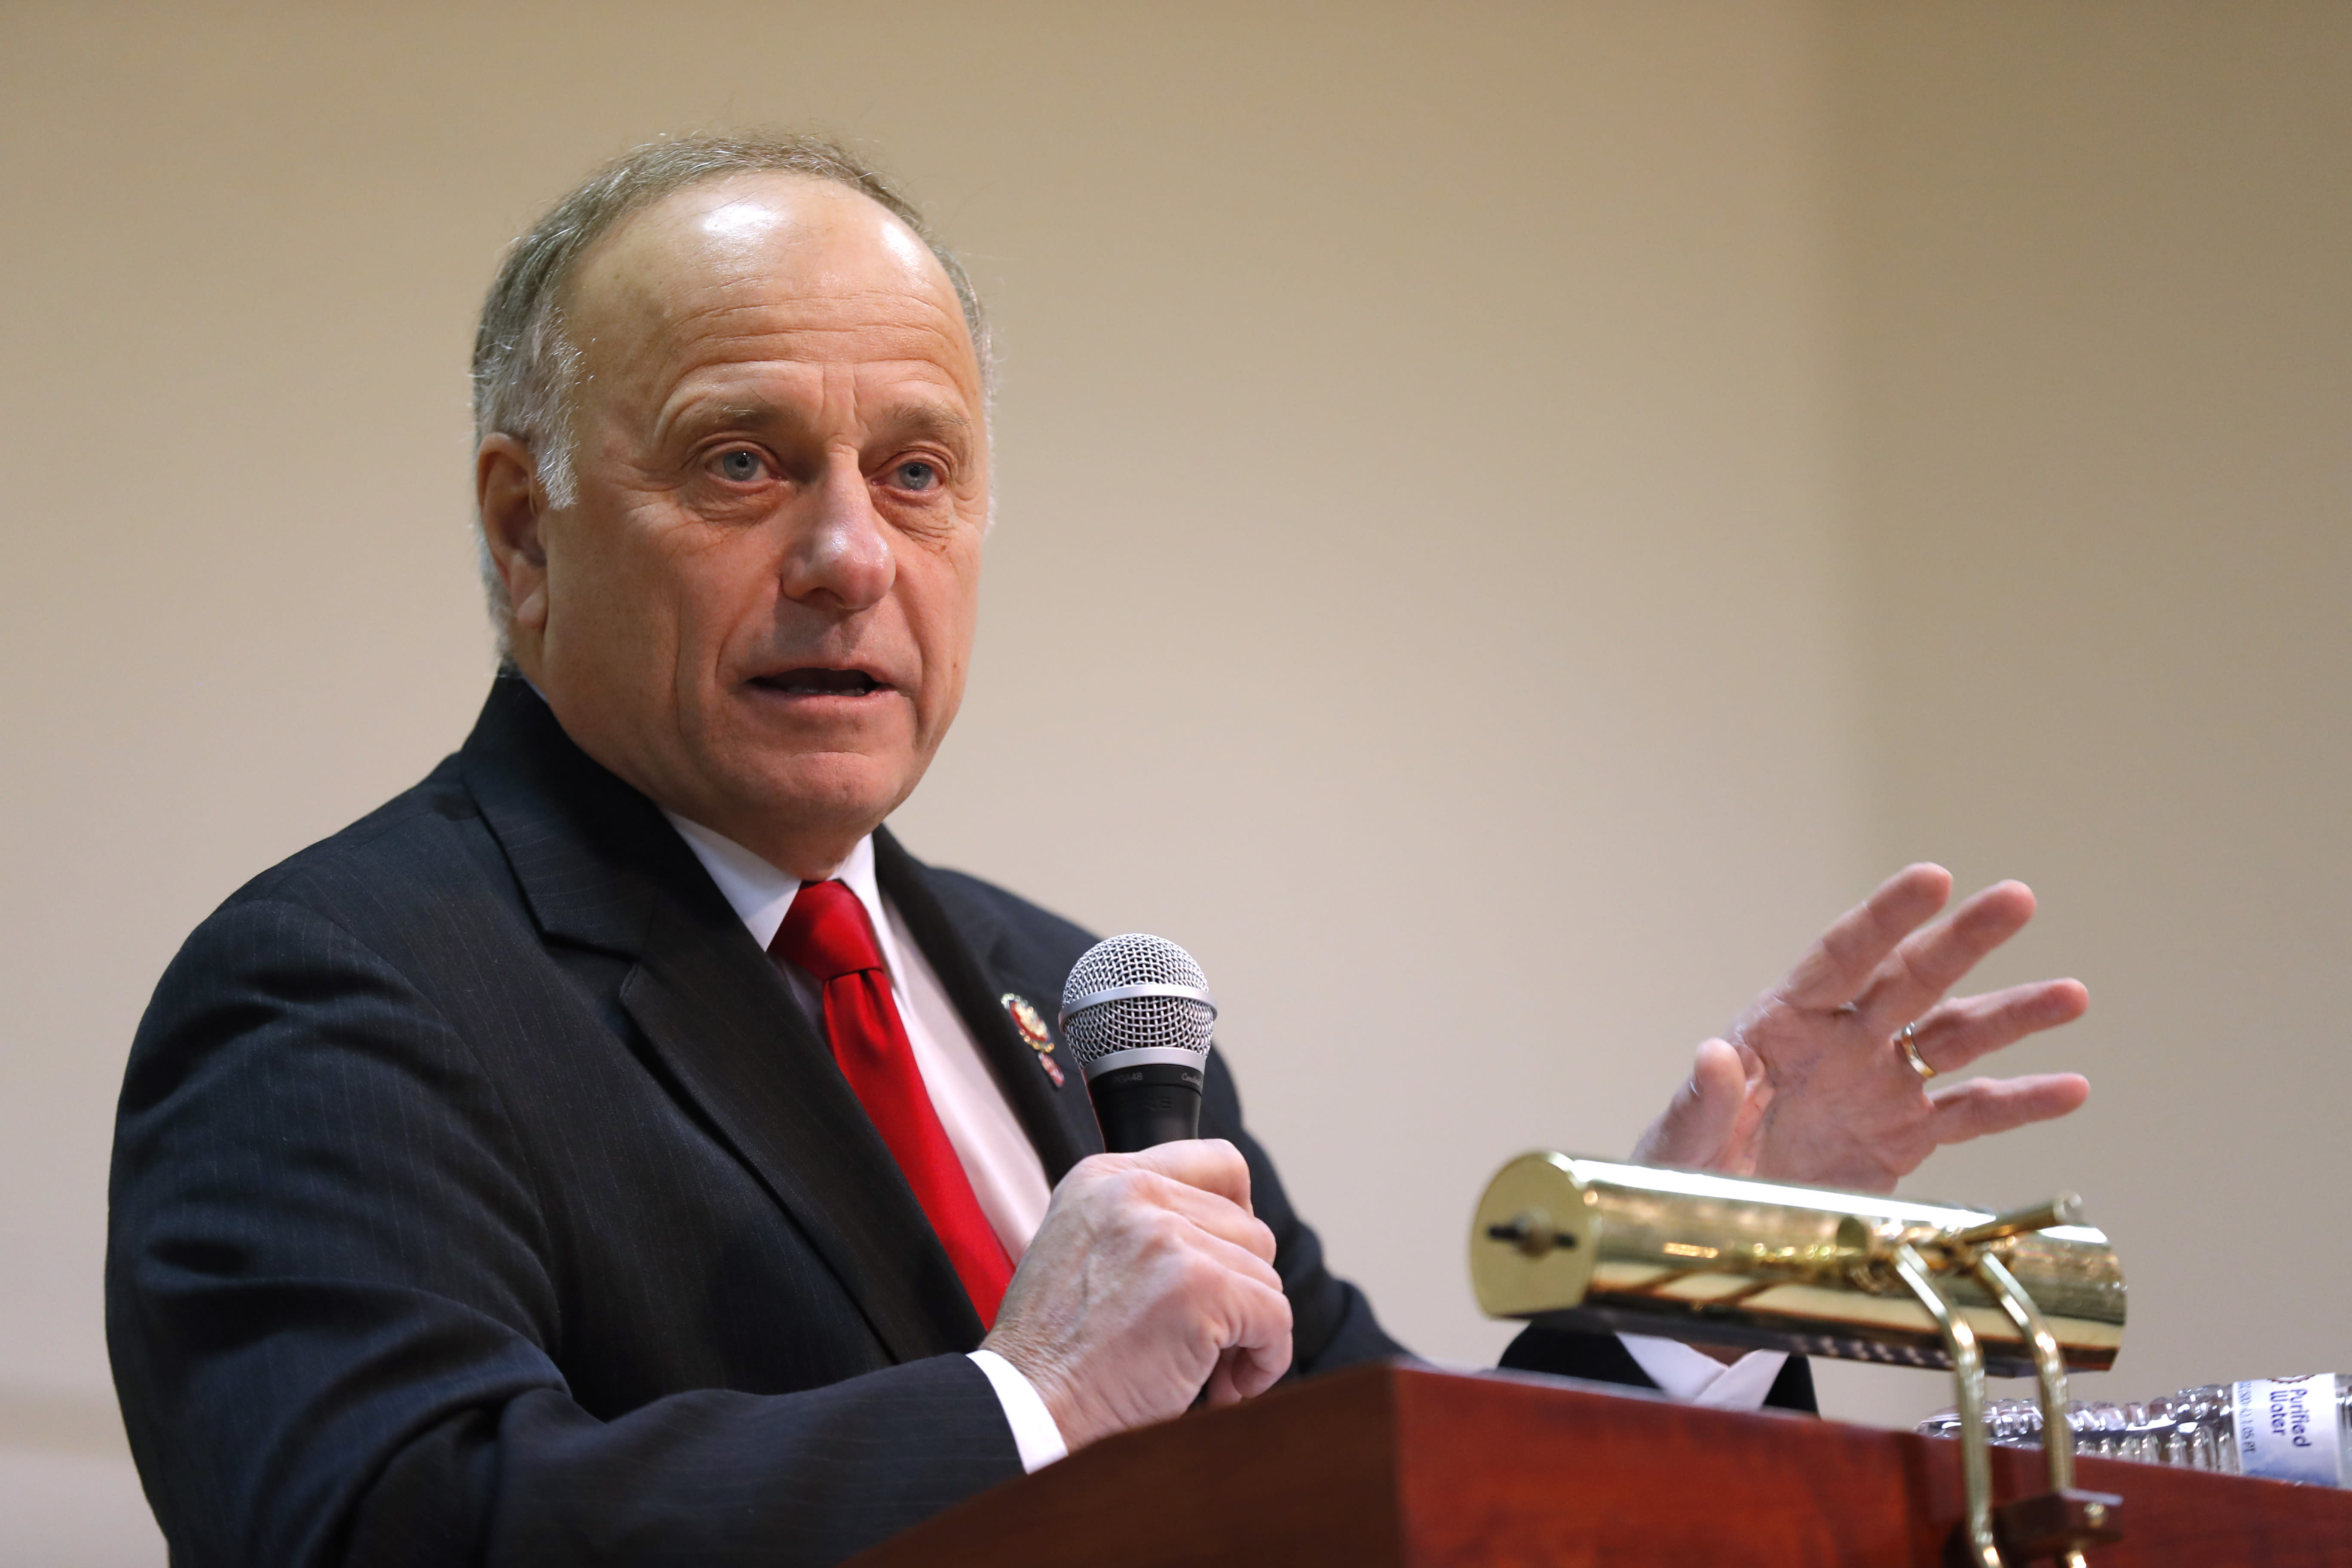 Republican congressman questions whether humanity would have survived without rape and incest